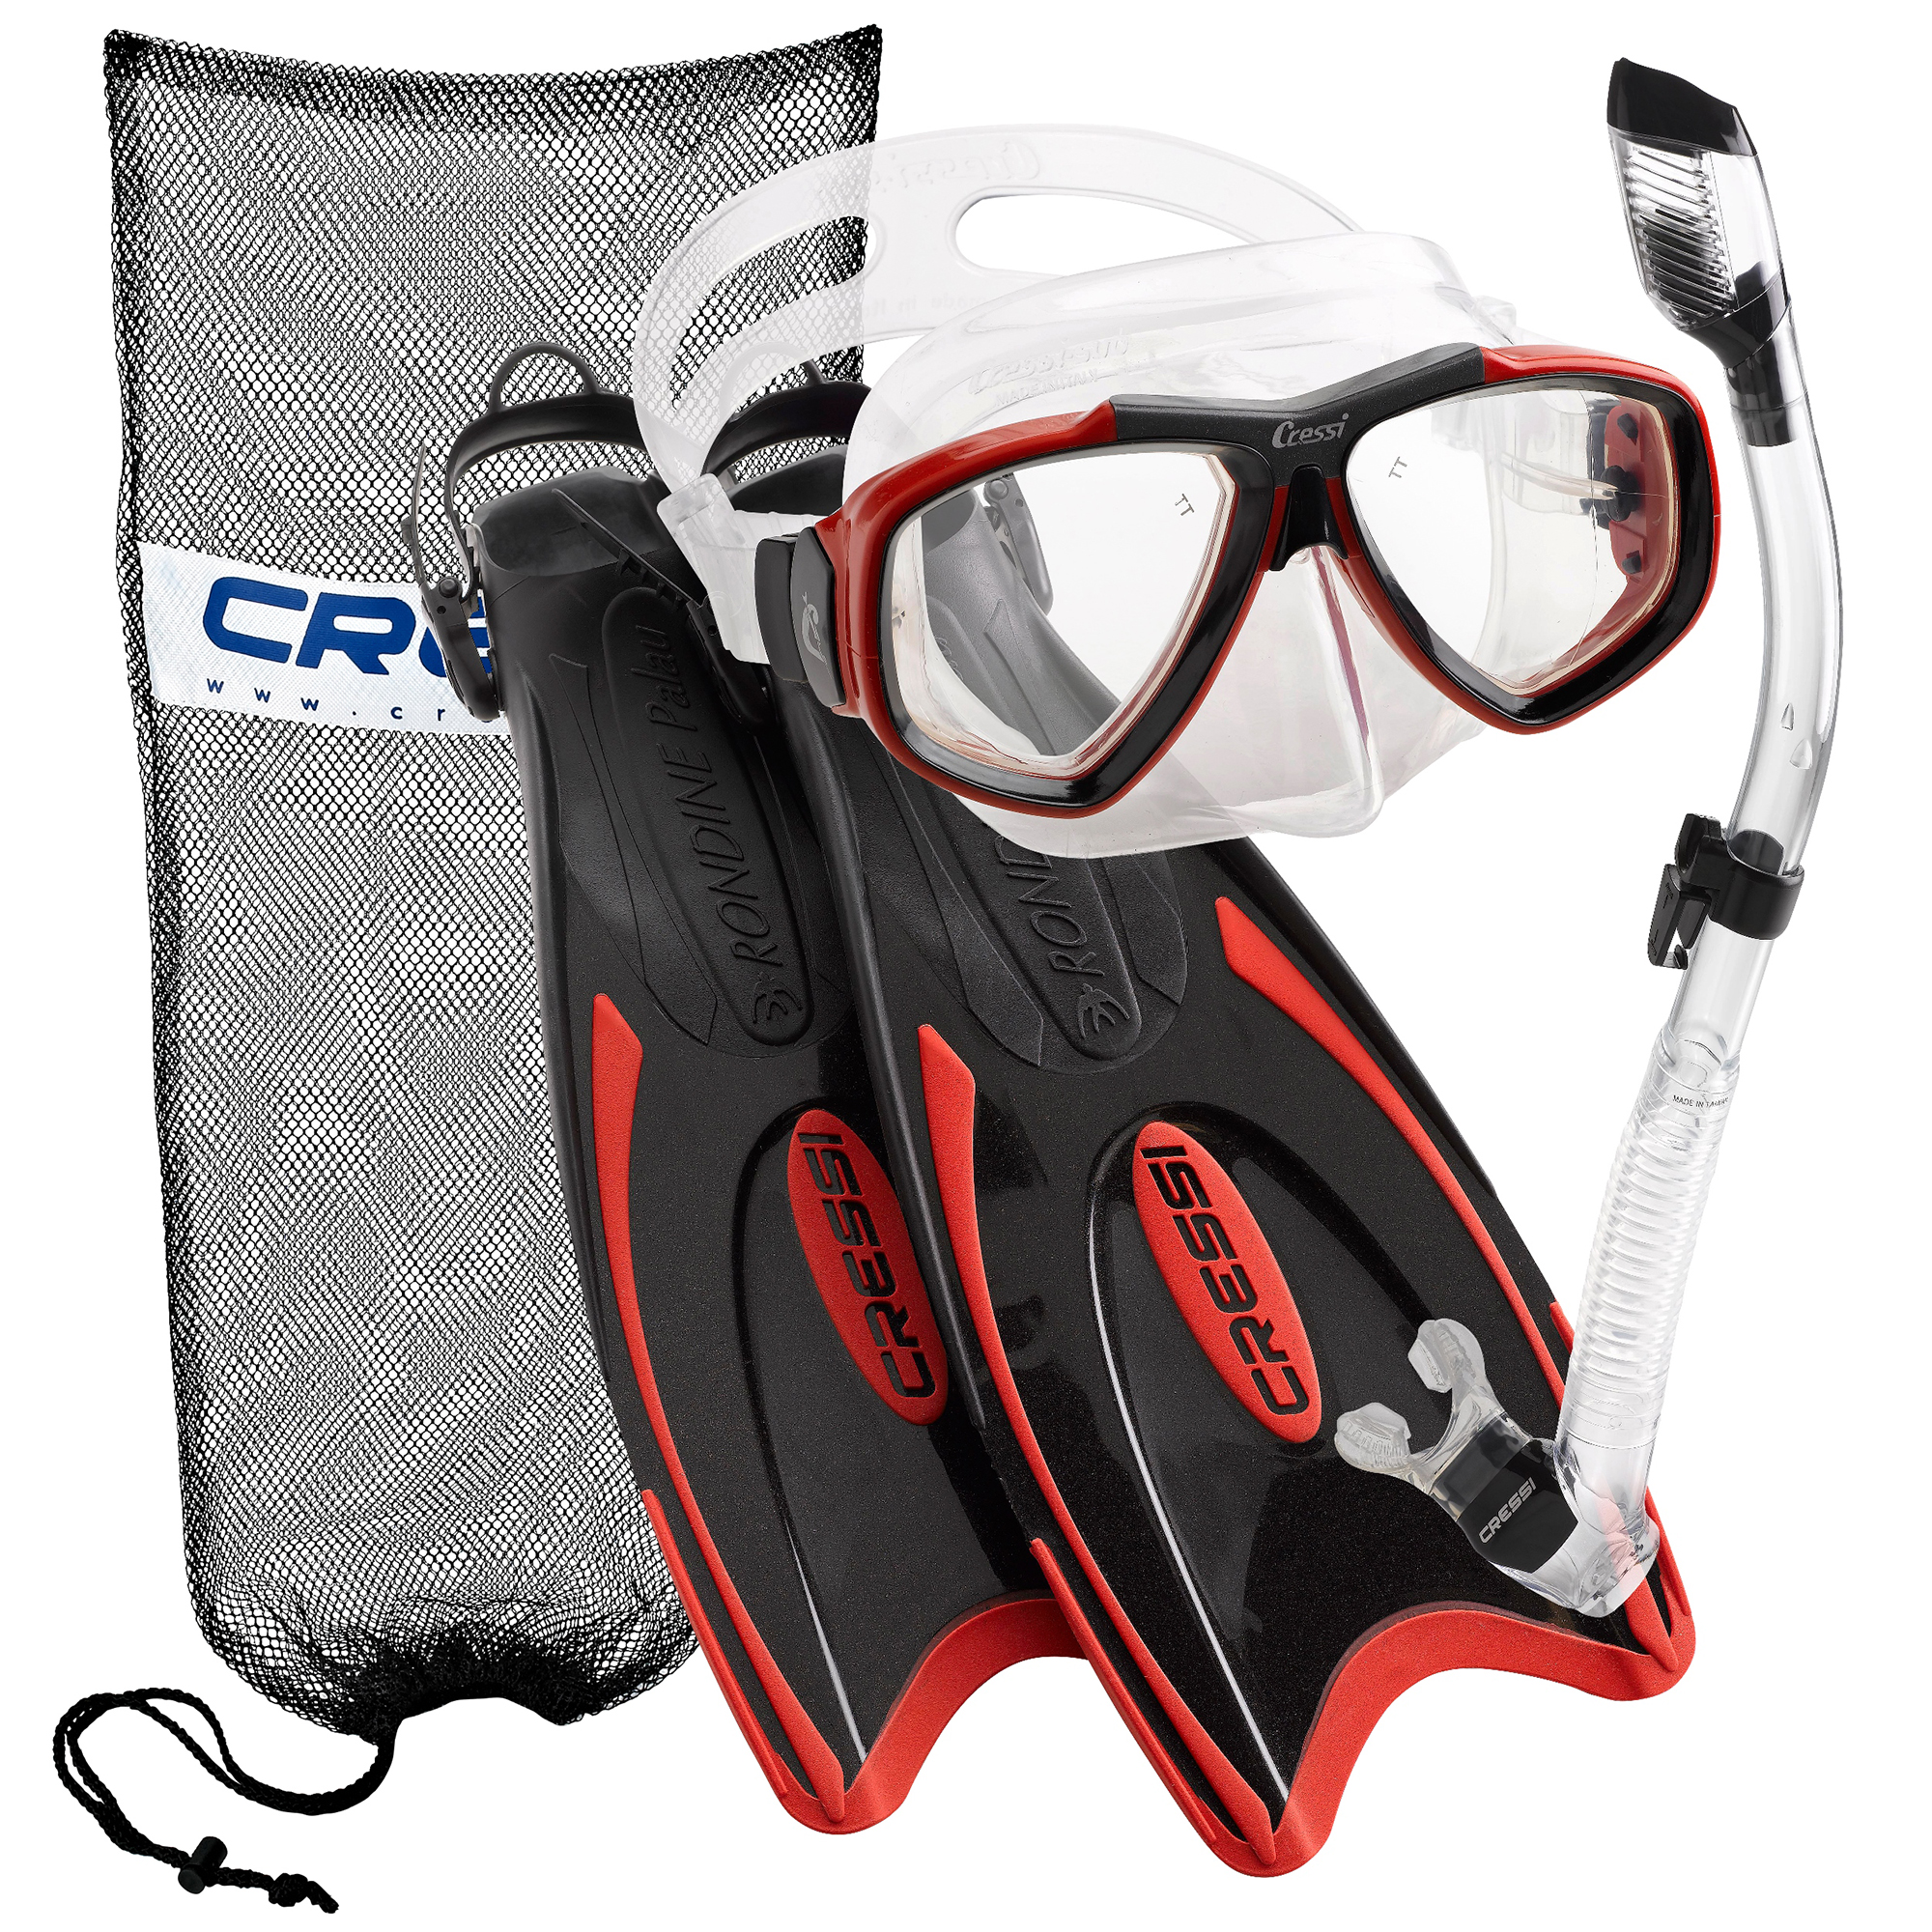 Click here to buy Cressi Palau Long Fins, Focus Mask, Dry Snorkel, Snorkeling Gear Package, Red LG.